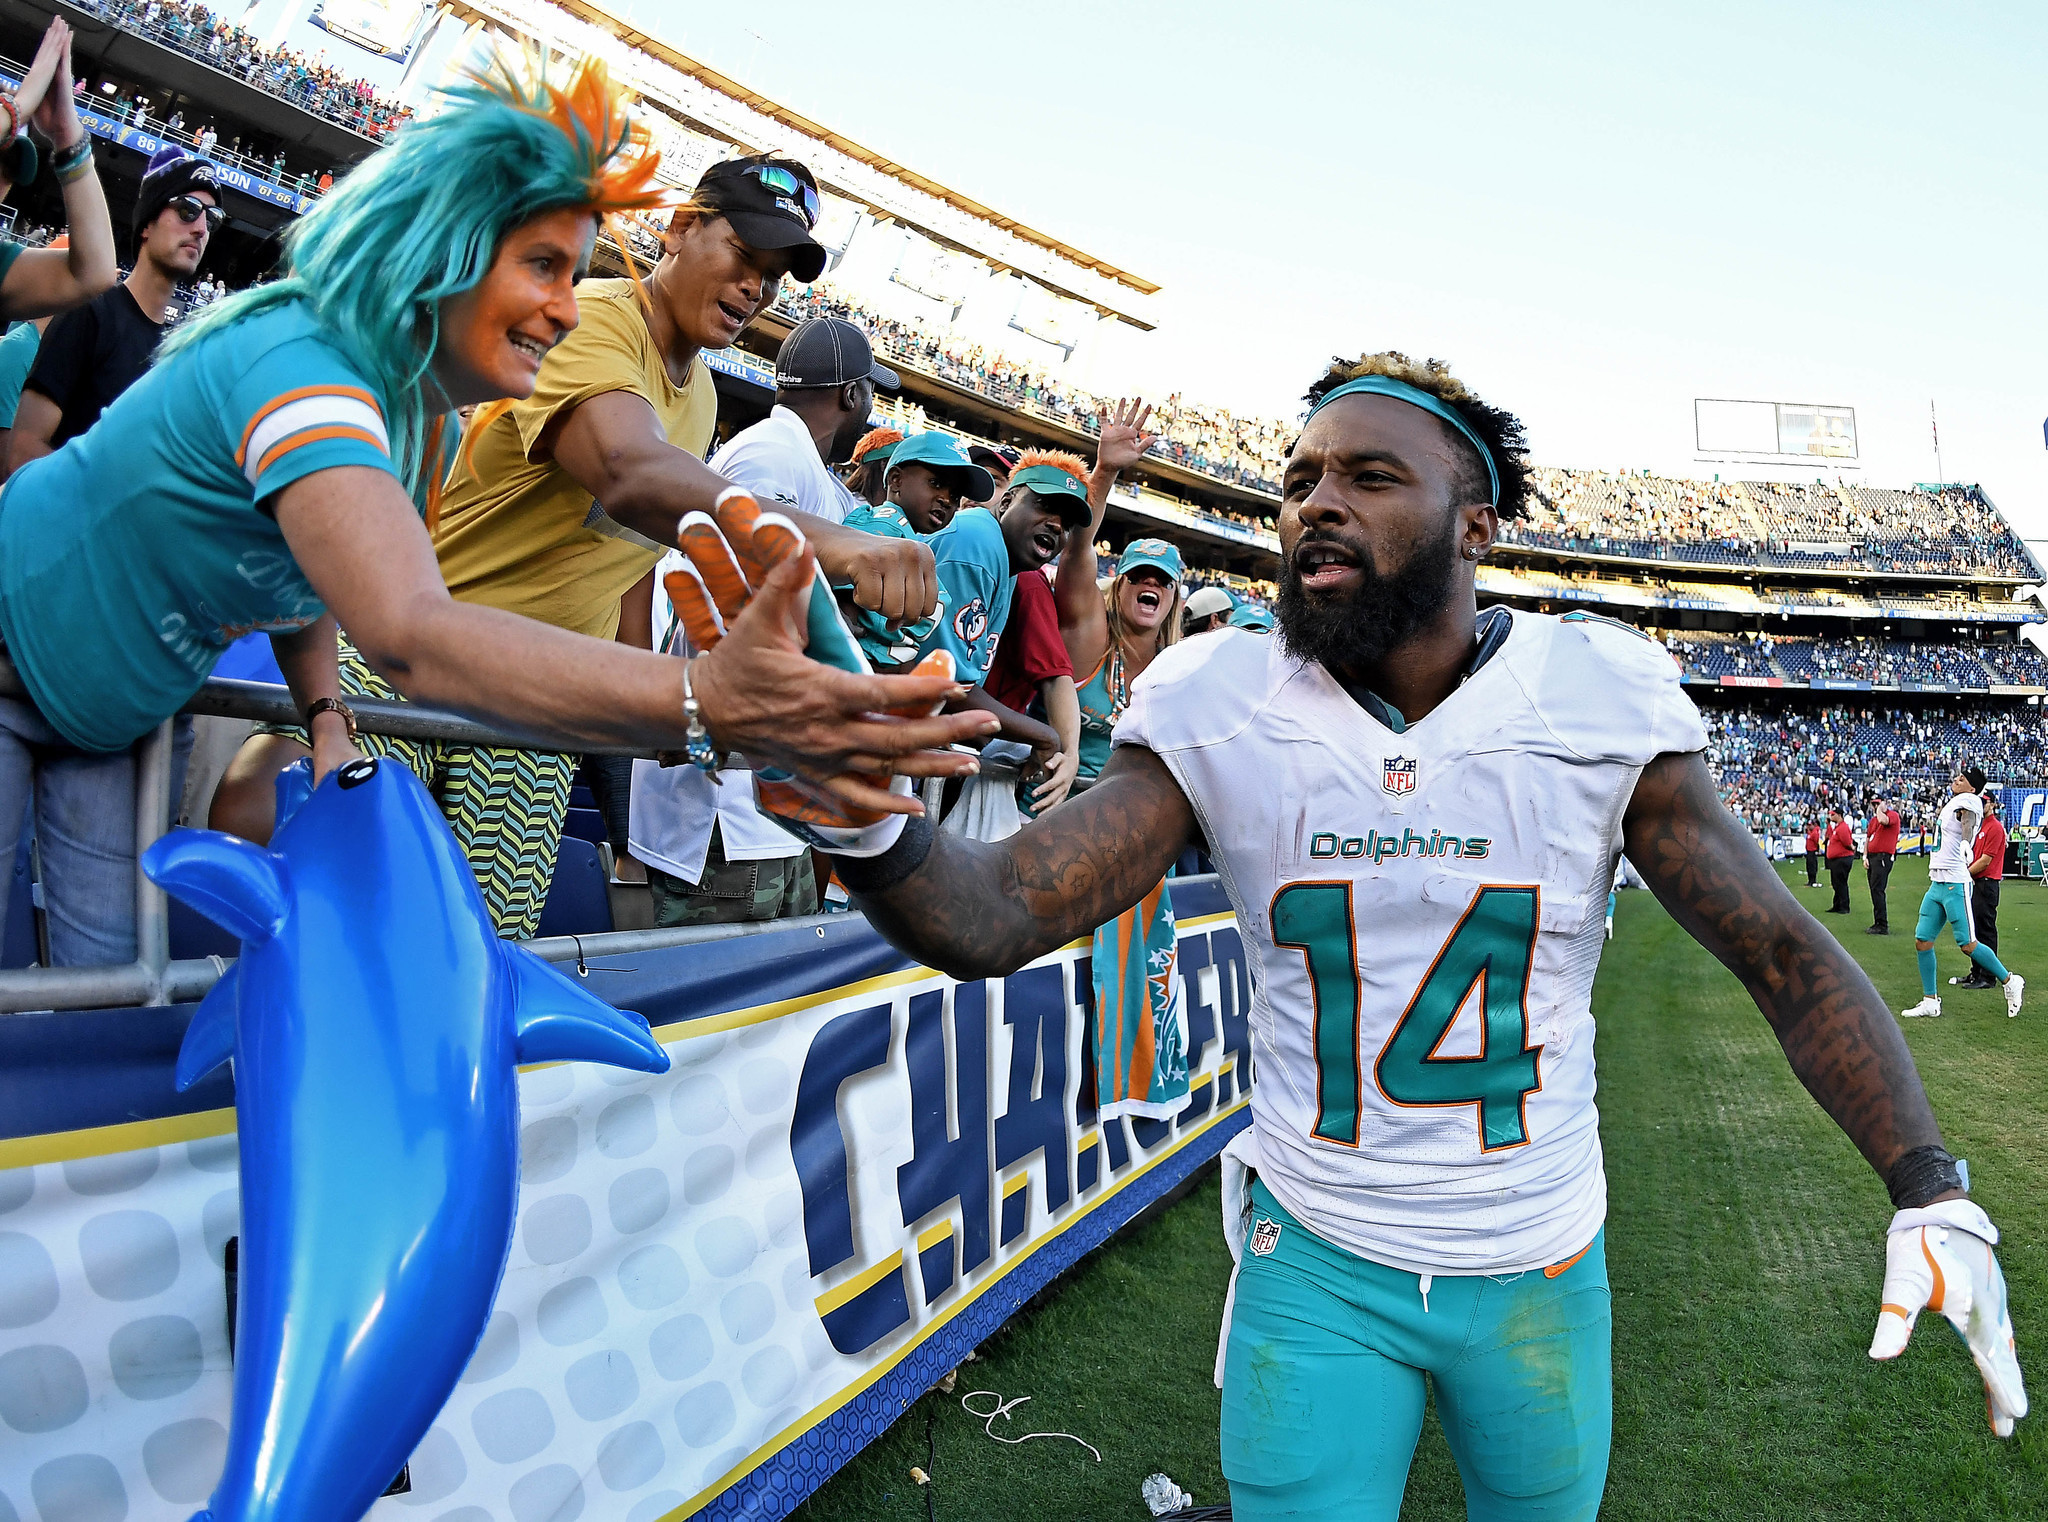 Fl-sp-dolphins-face-of-franchise-20170323